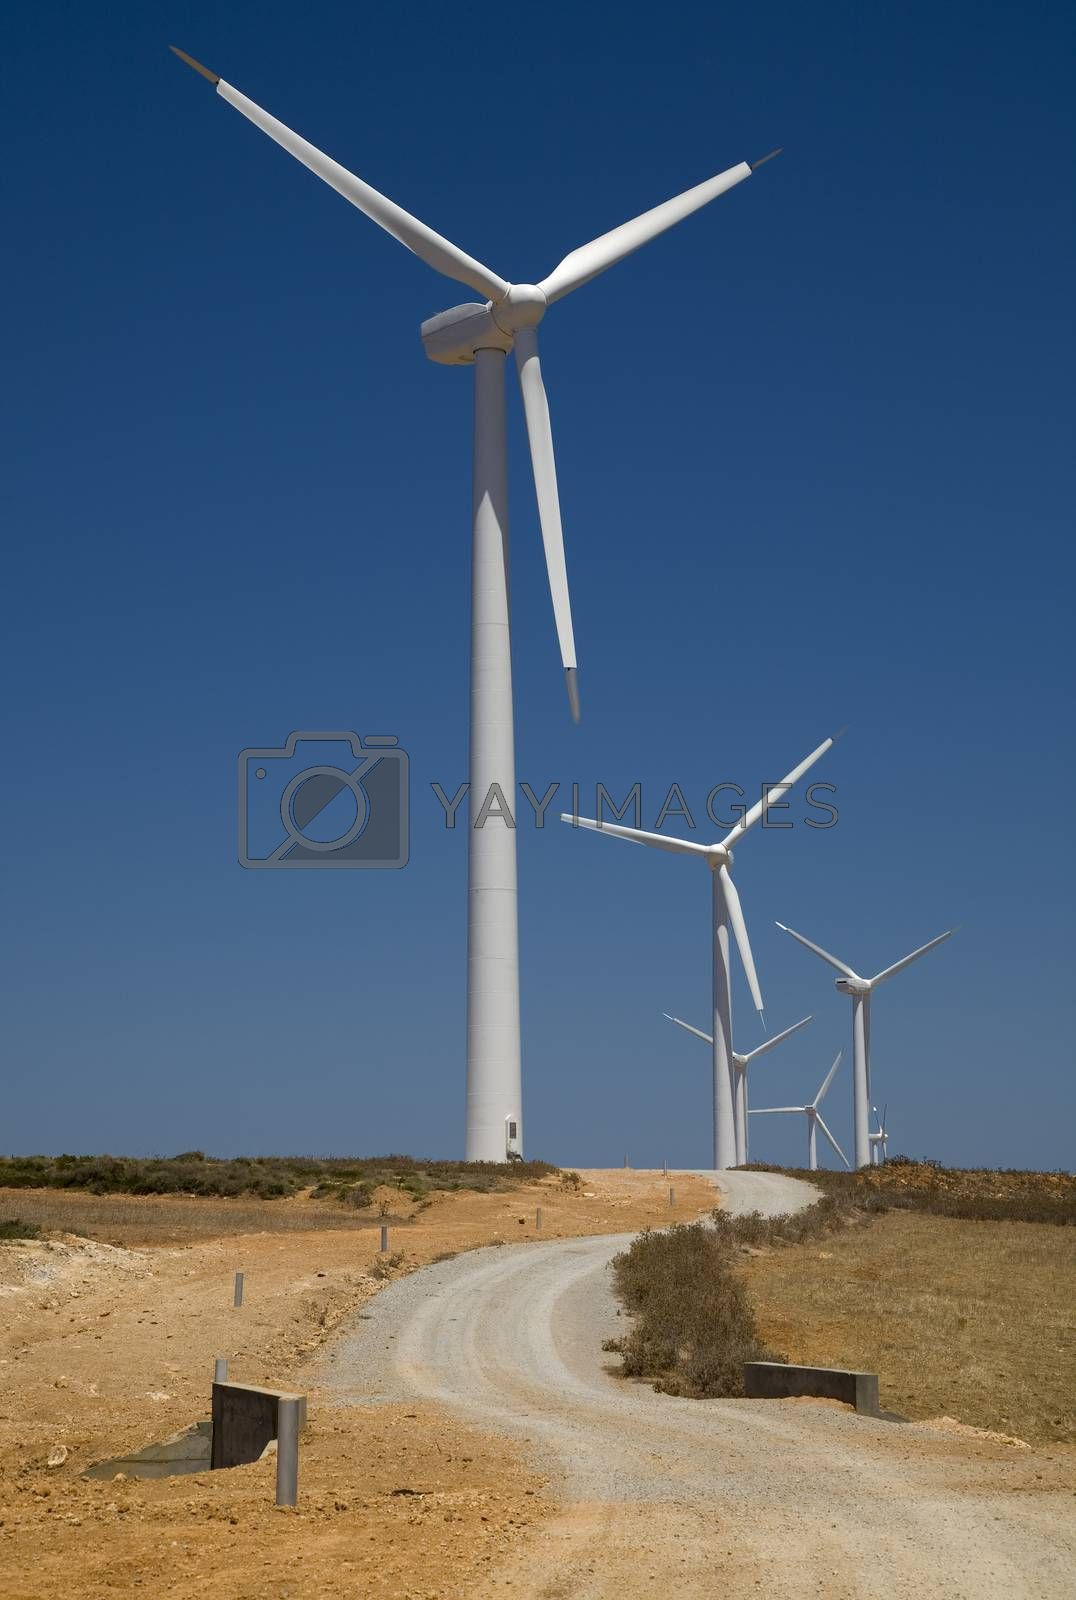 Royalty free image of wind turbines  by phortcach